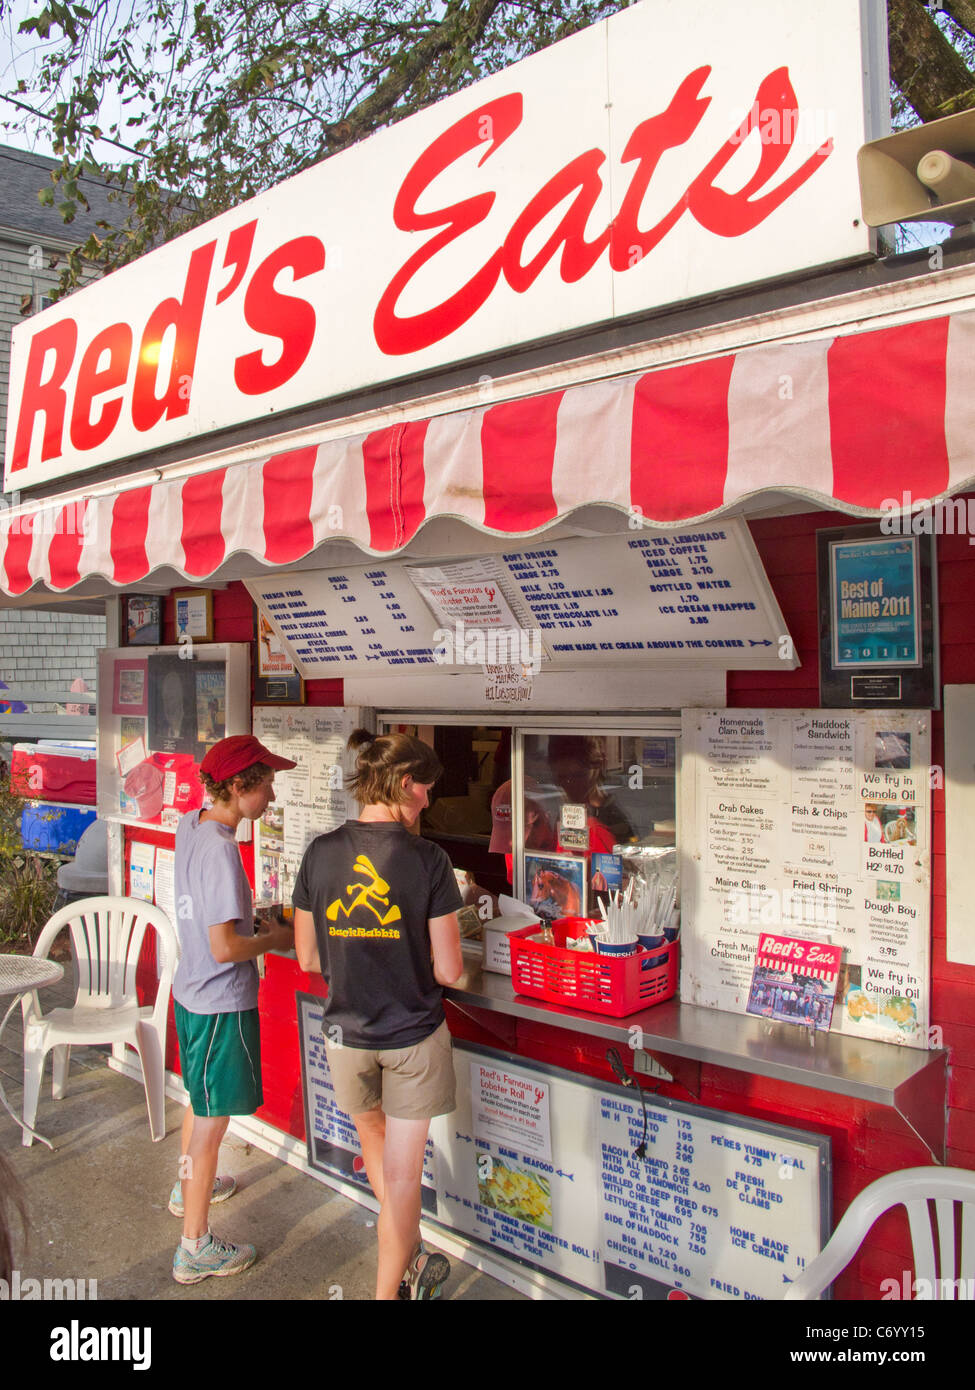 Red's Eats lobster stand in Wiscasset Maine ME - Stock Image